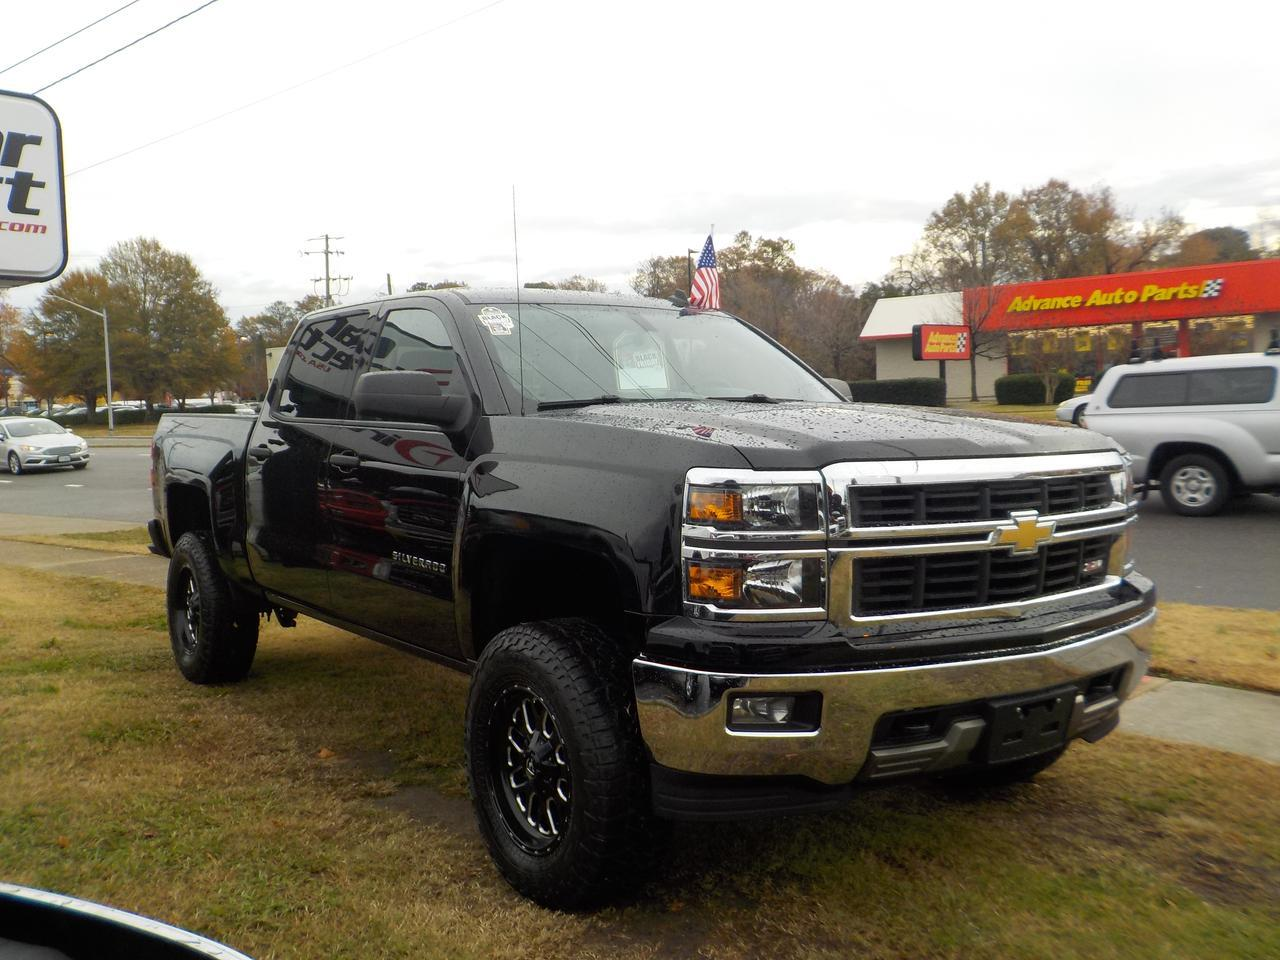 2014 CHEVROLET SILVERADO LIFTED 4X4, BLACK FUEL RIMS, NAVIGATION, REMOTE START, TOW PACKAGE! Virginia Beach VA